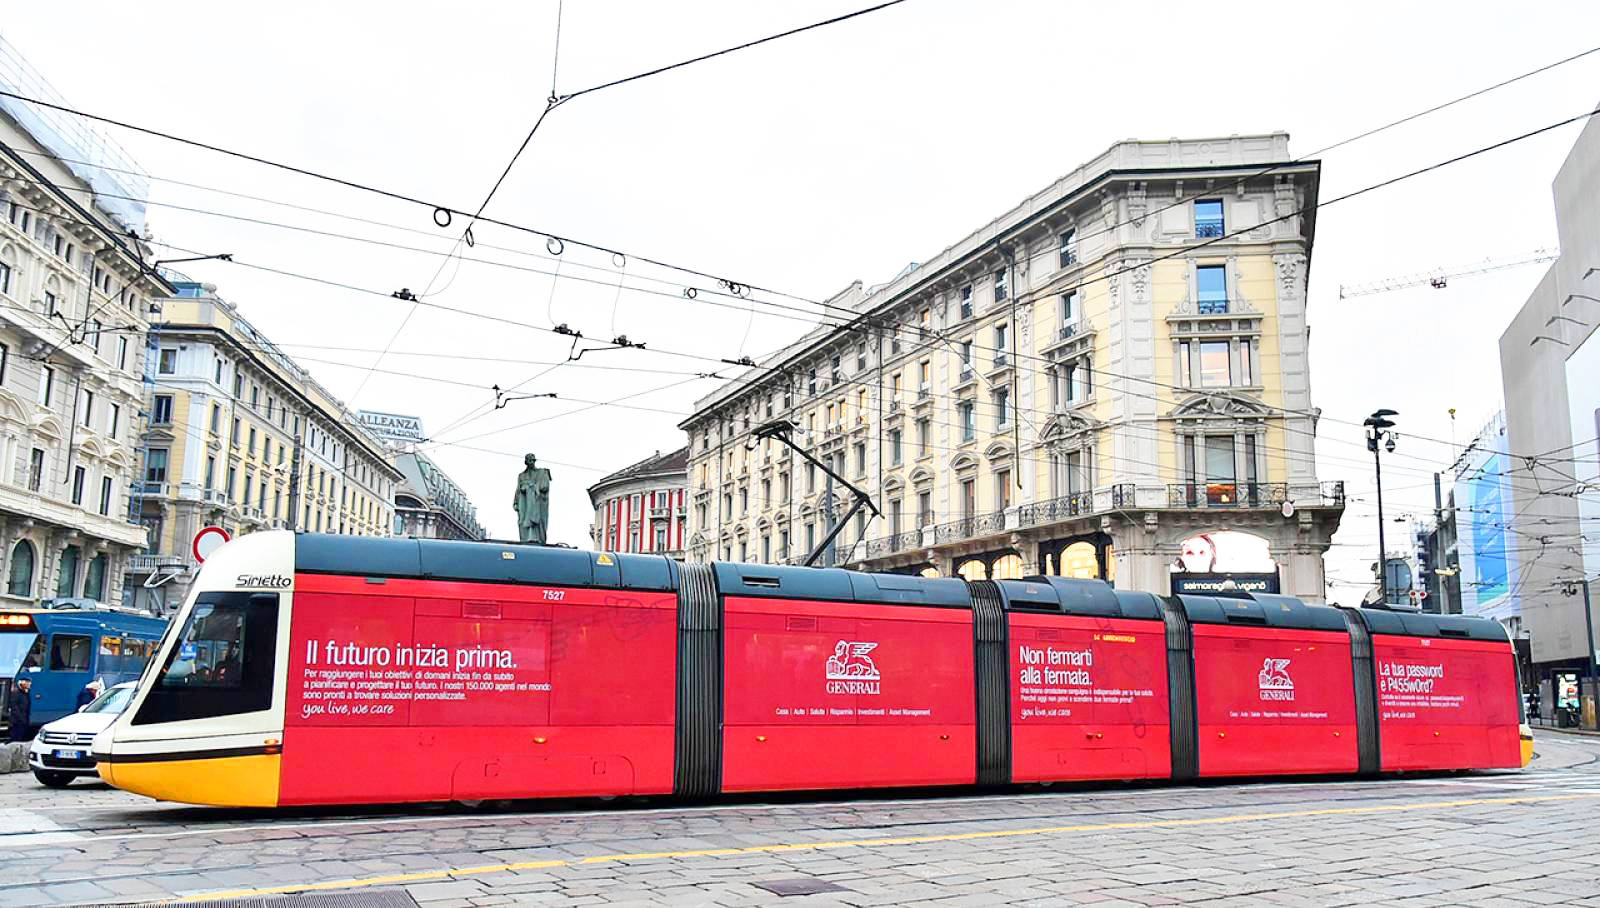 IGPDecaux Milan wrapped vehicle for Generali